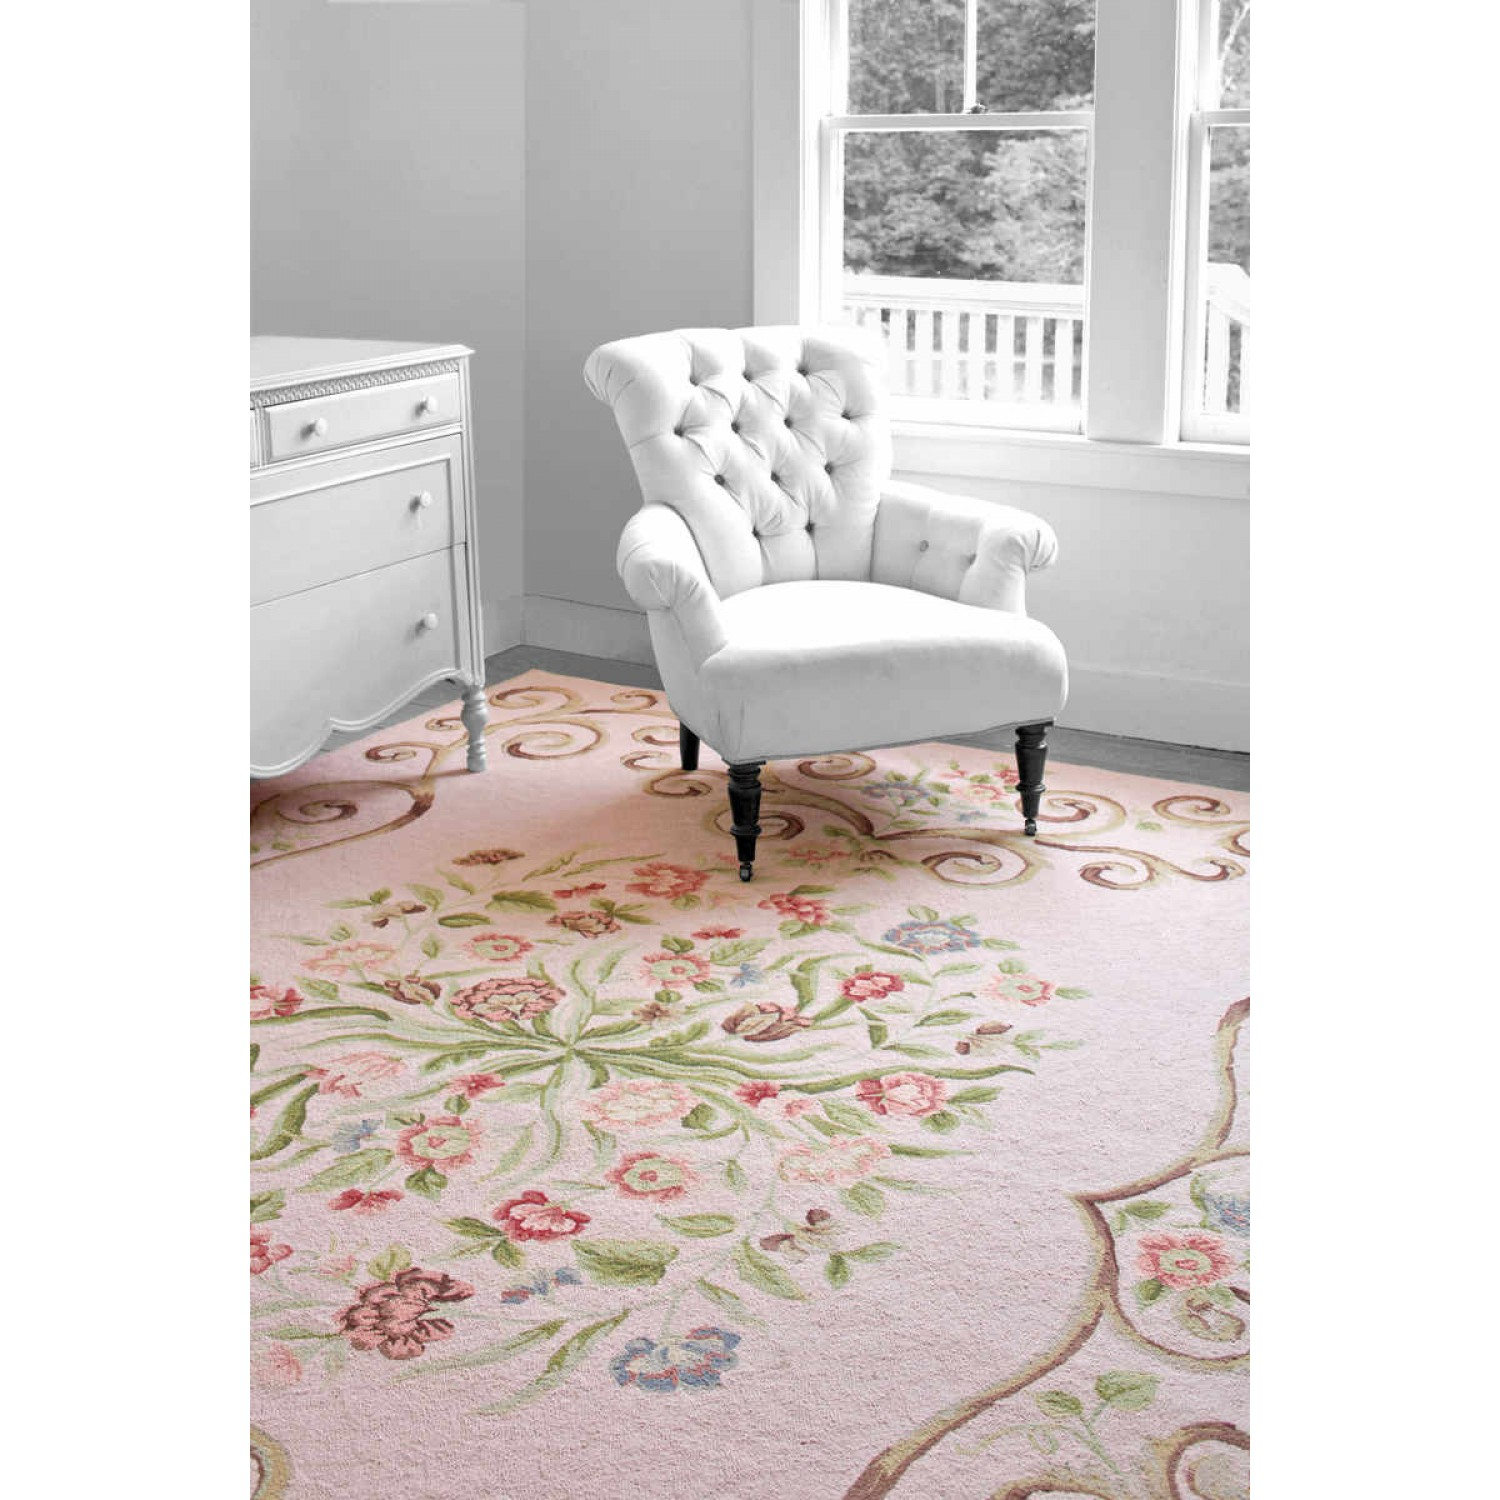 Have A Cute Floor Decor With Dash And Albert Rugs Ideas: Lovely Dash And Albert Rugs Siena Rose Wool Micro Hooked On Wooden Floor Matched With White Wall For Living Room Decor Ideas